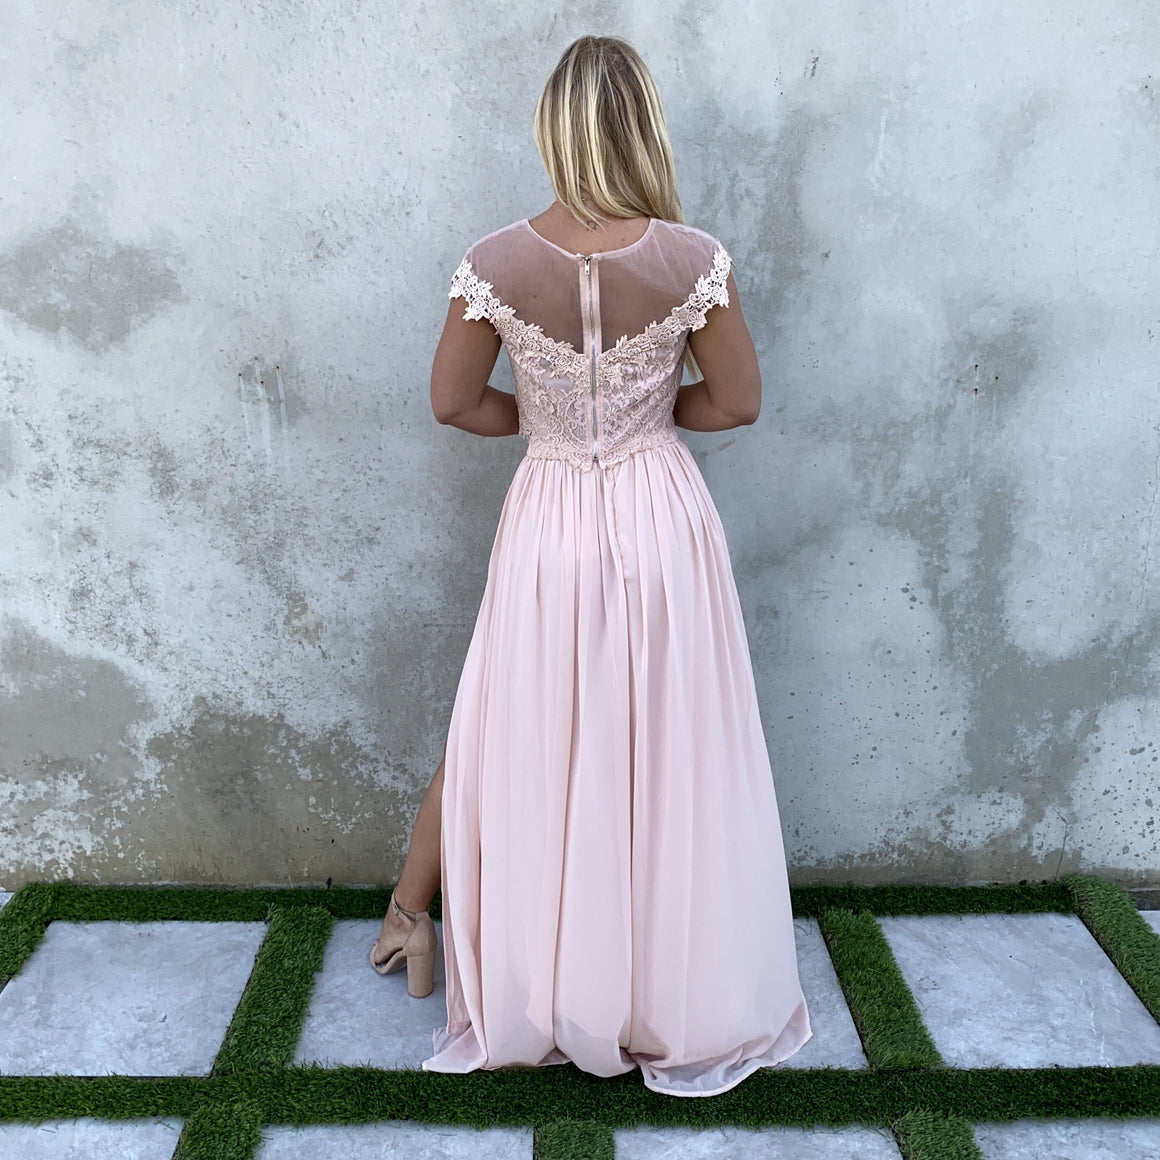 Dance With Me Lace Top & Maxi Skirt Set In Blush Pink - Dainty Hooligan